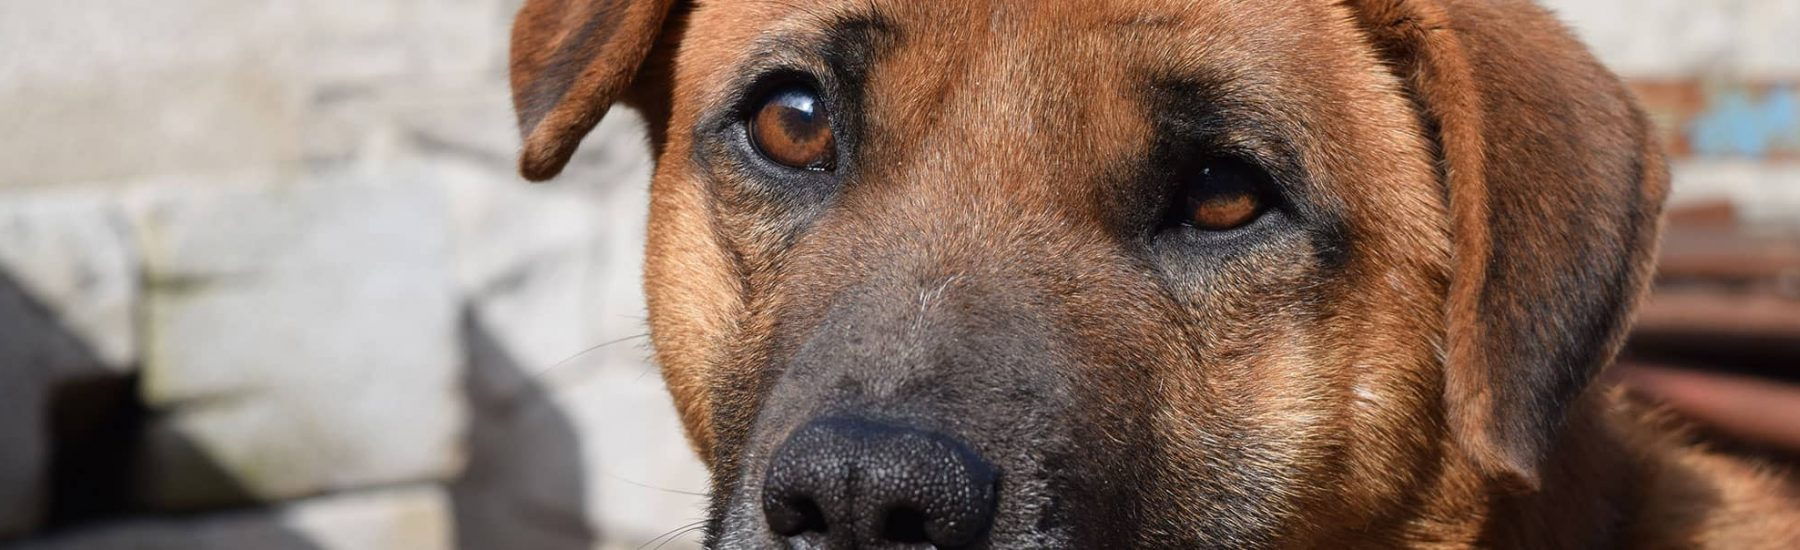 Close up of a brown dog